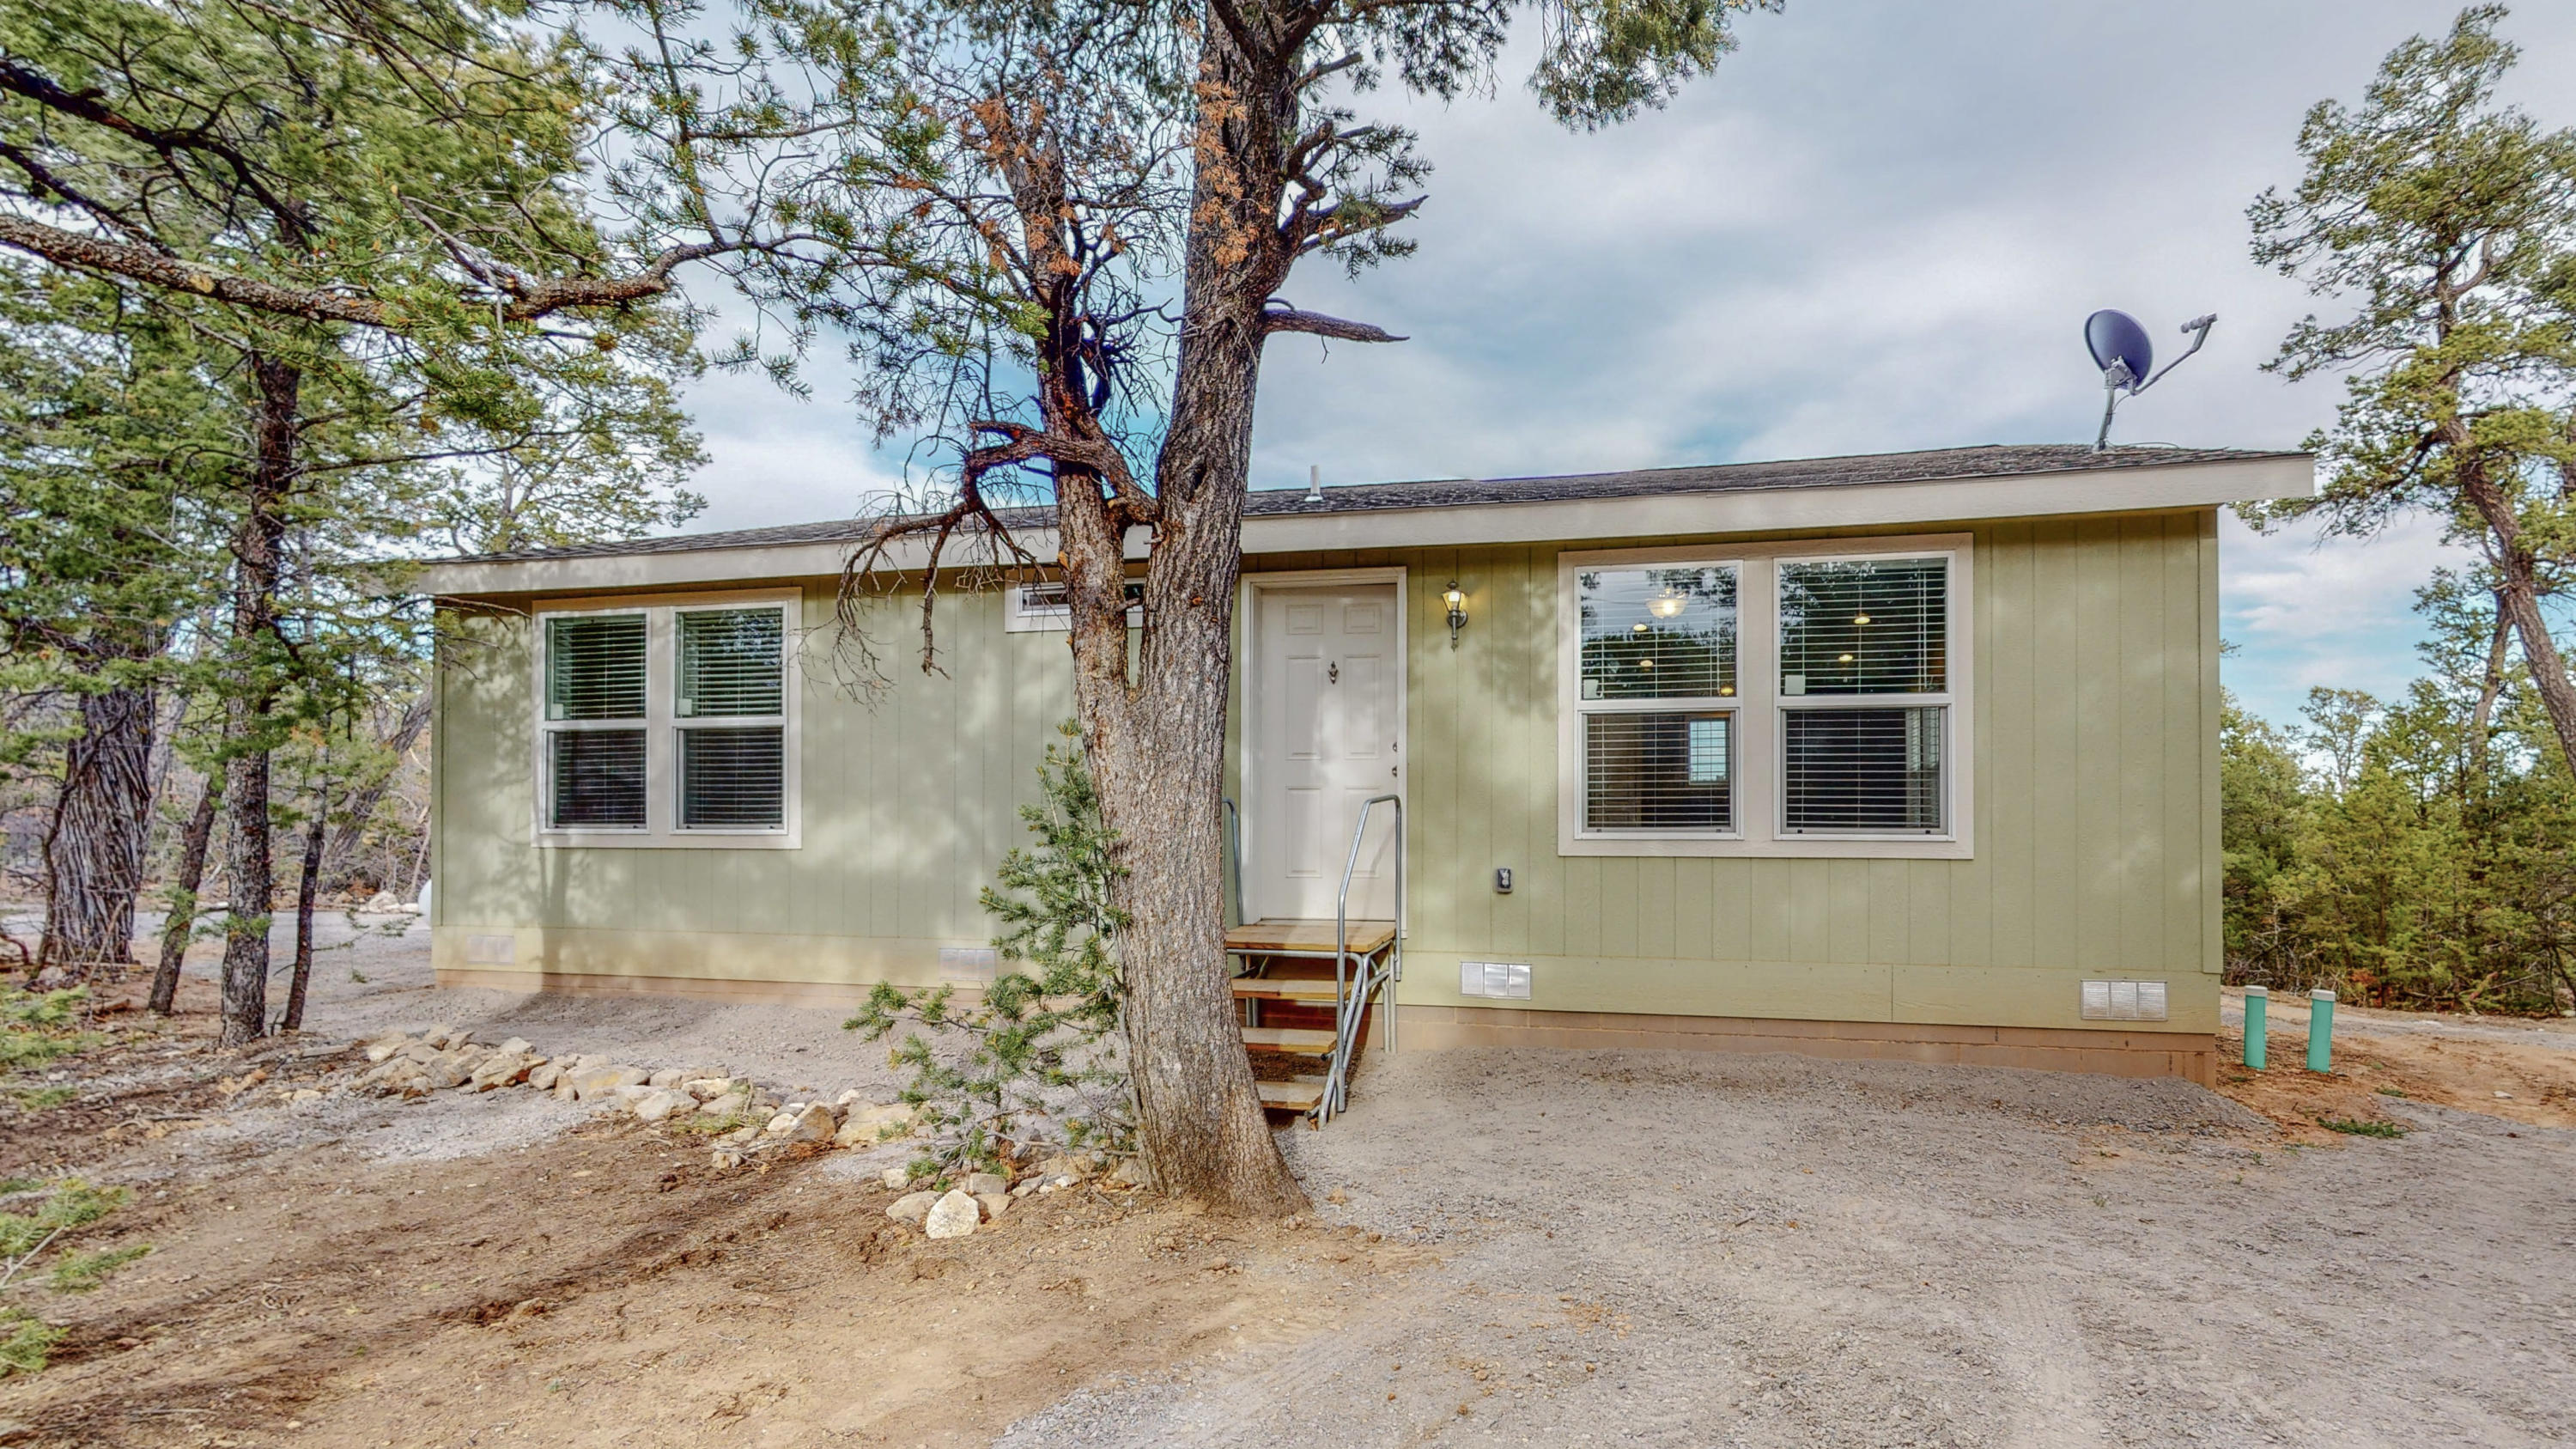 Are you looking for a cozy, nearly brand new 2 bed/ 2 full bath Karsten modular home just steps away from US Forest Serv. access?  This is it!  Built in 2020,  this home features a large open concept dining/living room & kitchen.  Walk in closet in main bdrm and a utility/ W/D area. Second bdrm could also double as an office.  Located on approx.  3/4 acre with expansive views to the east.  Potential exists for a deck to be built on the back, imagine the possibilities!  Could even work as a VRBO type property, due to  proximity to David Canyon (USFS), with it's miles of trails only feet from your front door. Home a water haul (1100 gallon),  pump system/ propane/septic, everything is only a year old! Close to trails, full of possibilities, check out this quiet, peaceful home today!